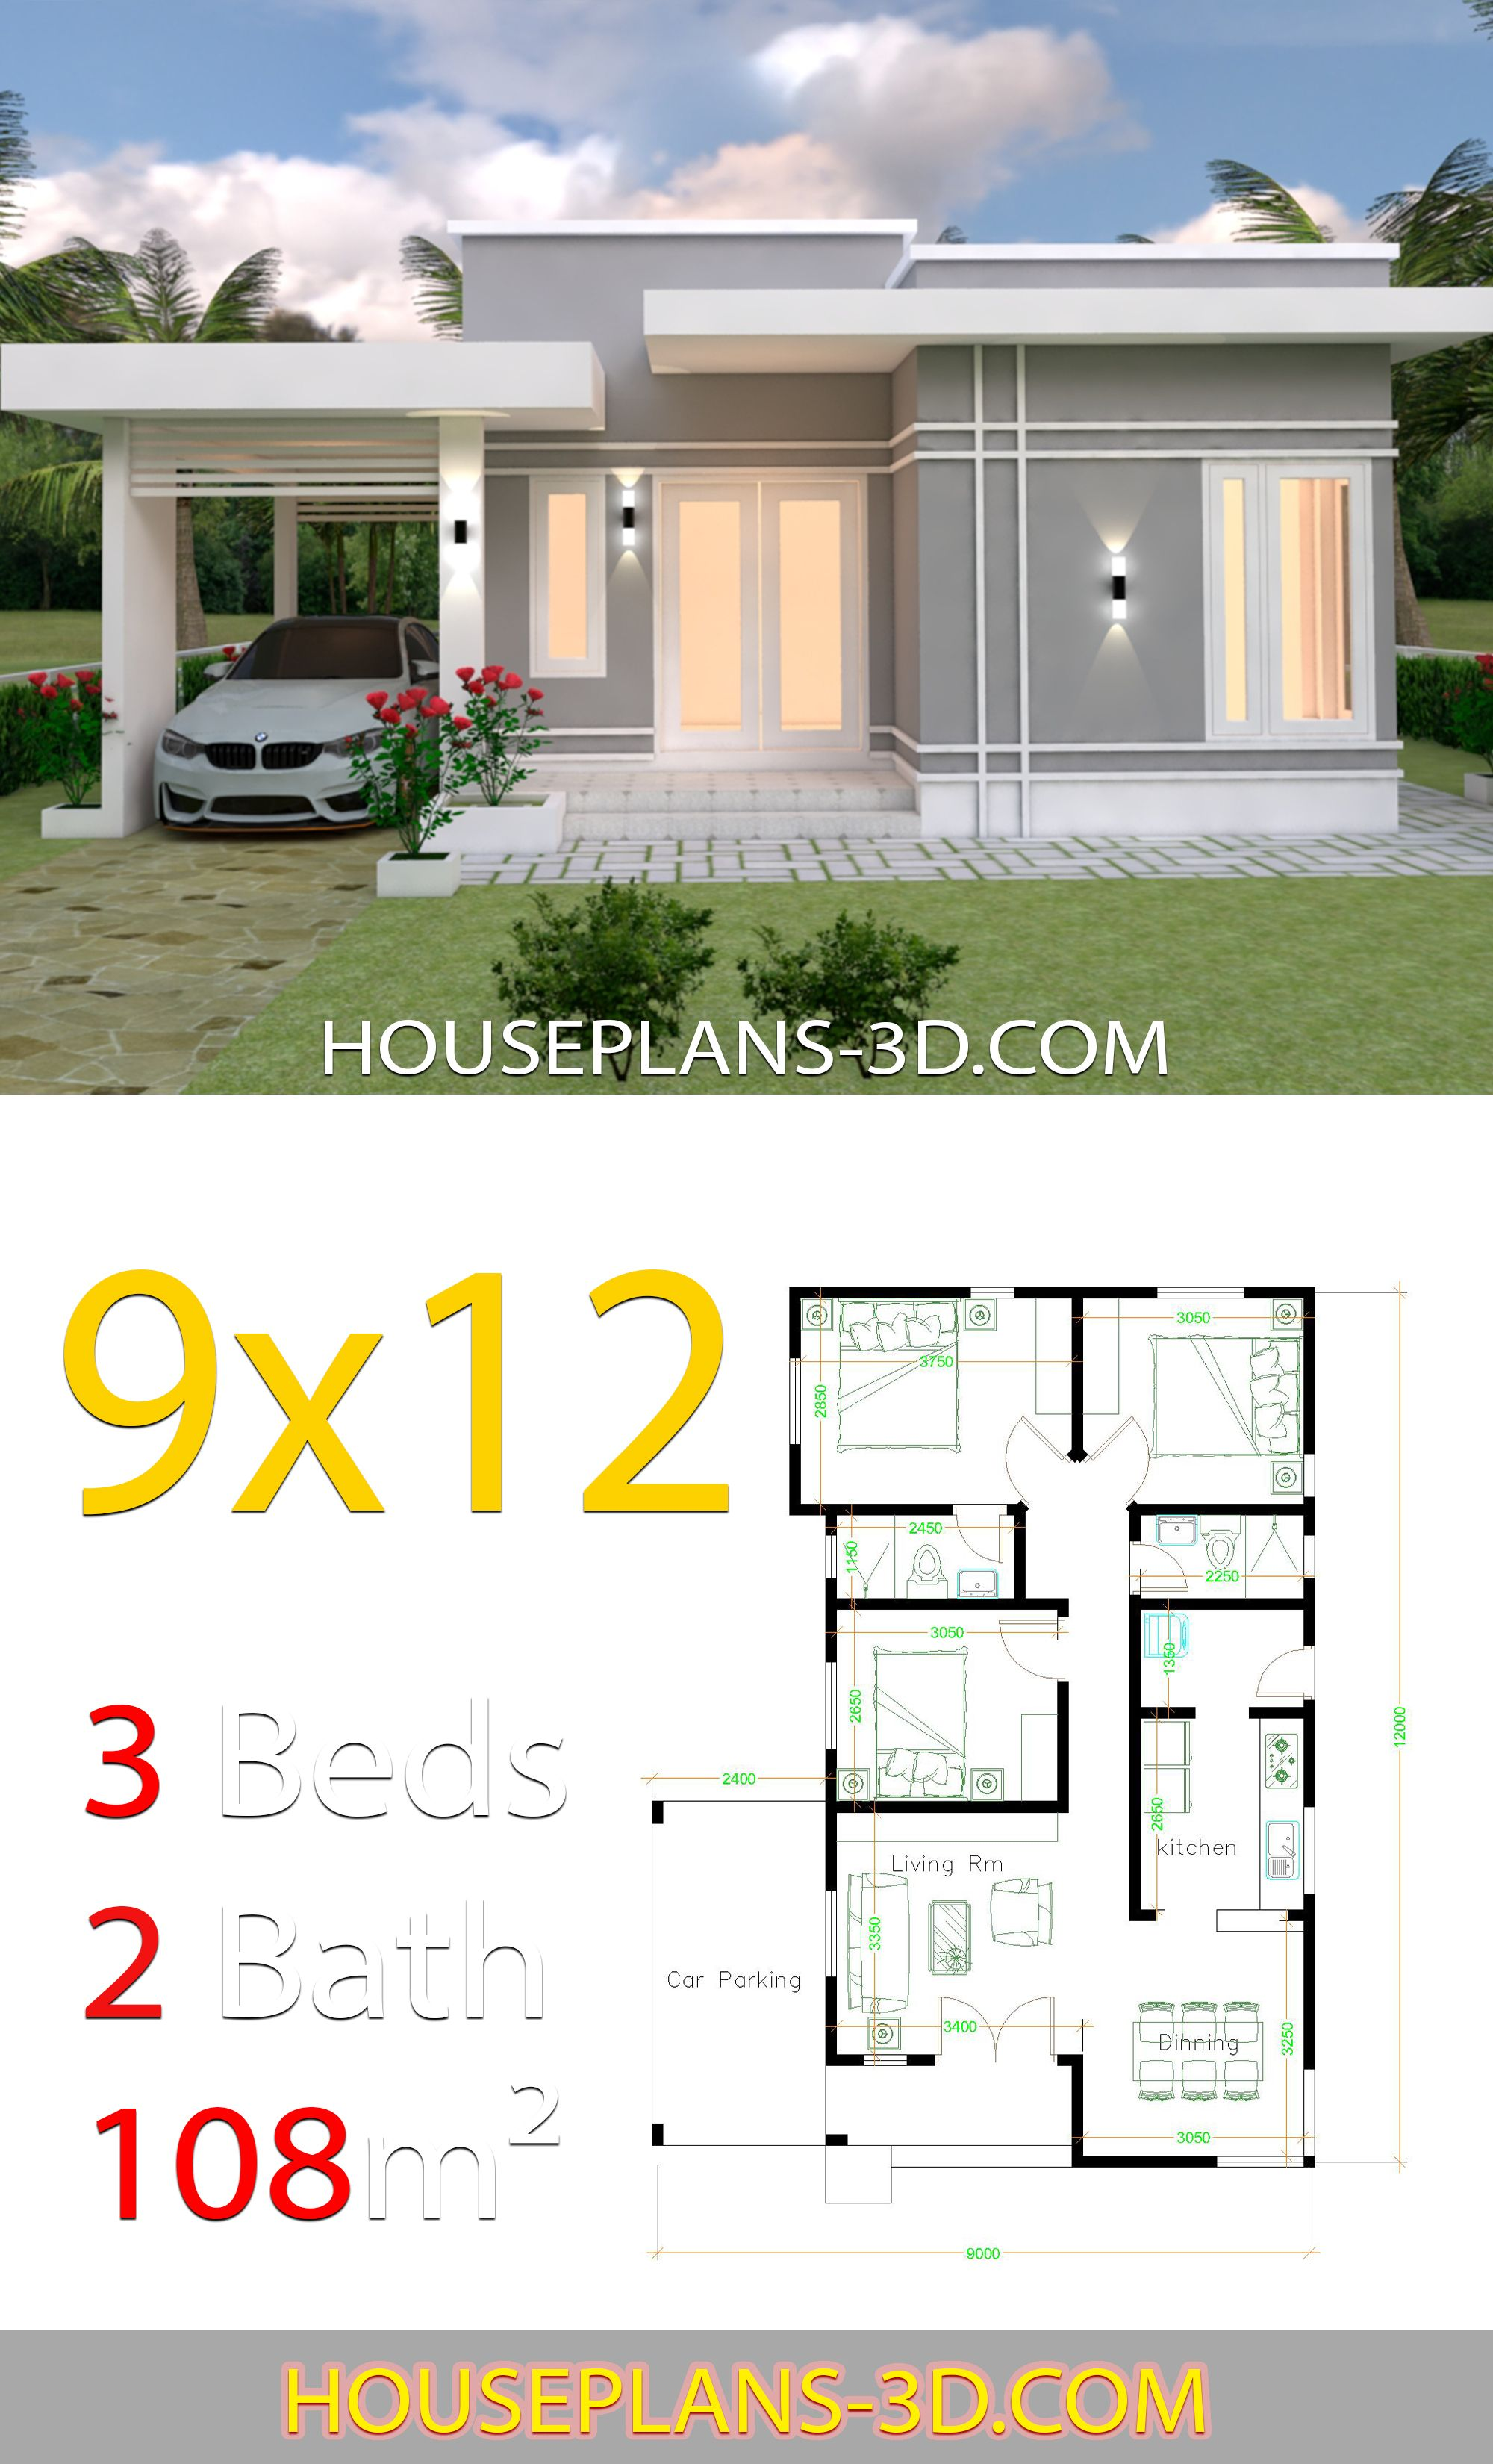 House Design Plans 9x12 With 3 Bedrooms Terrace Roof House Plans 3d Affordable House Plans Diy House Plans House Construction Plan